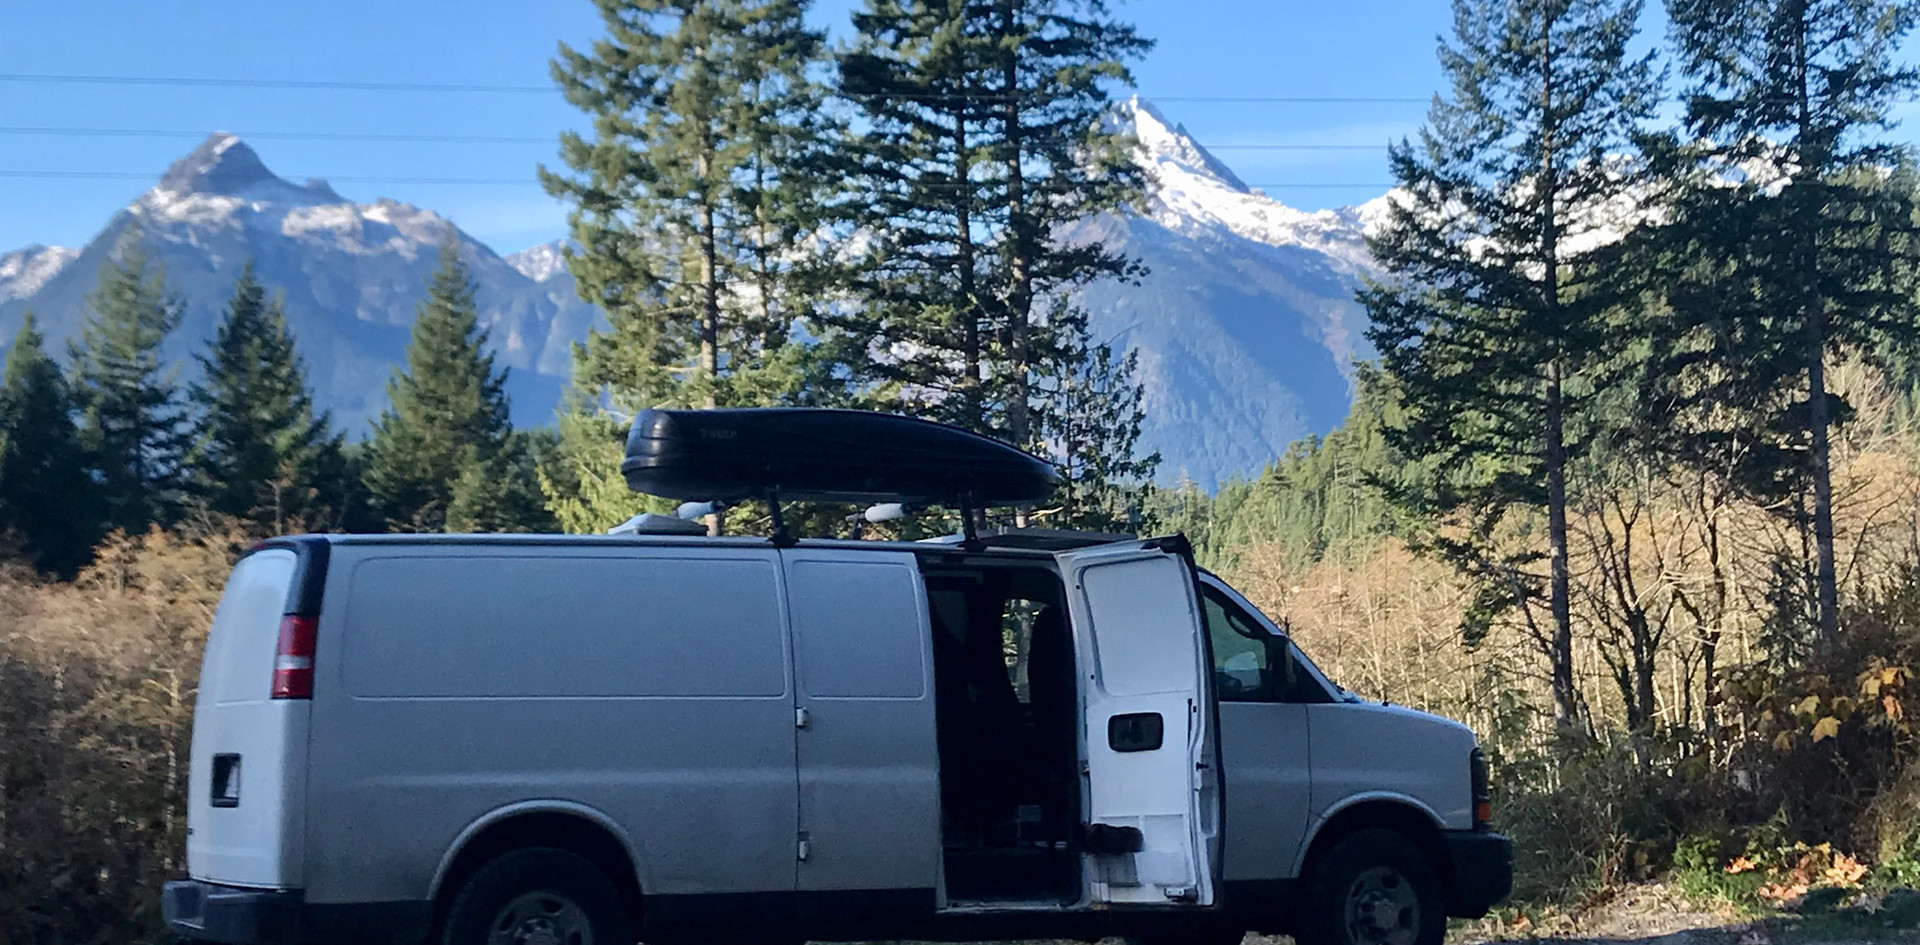 Camper for hire in the mountains